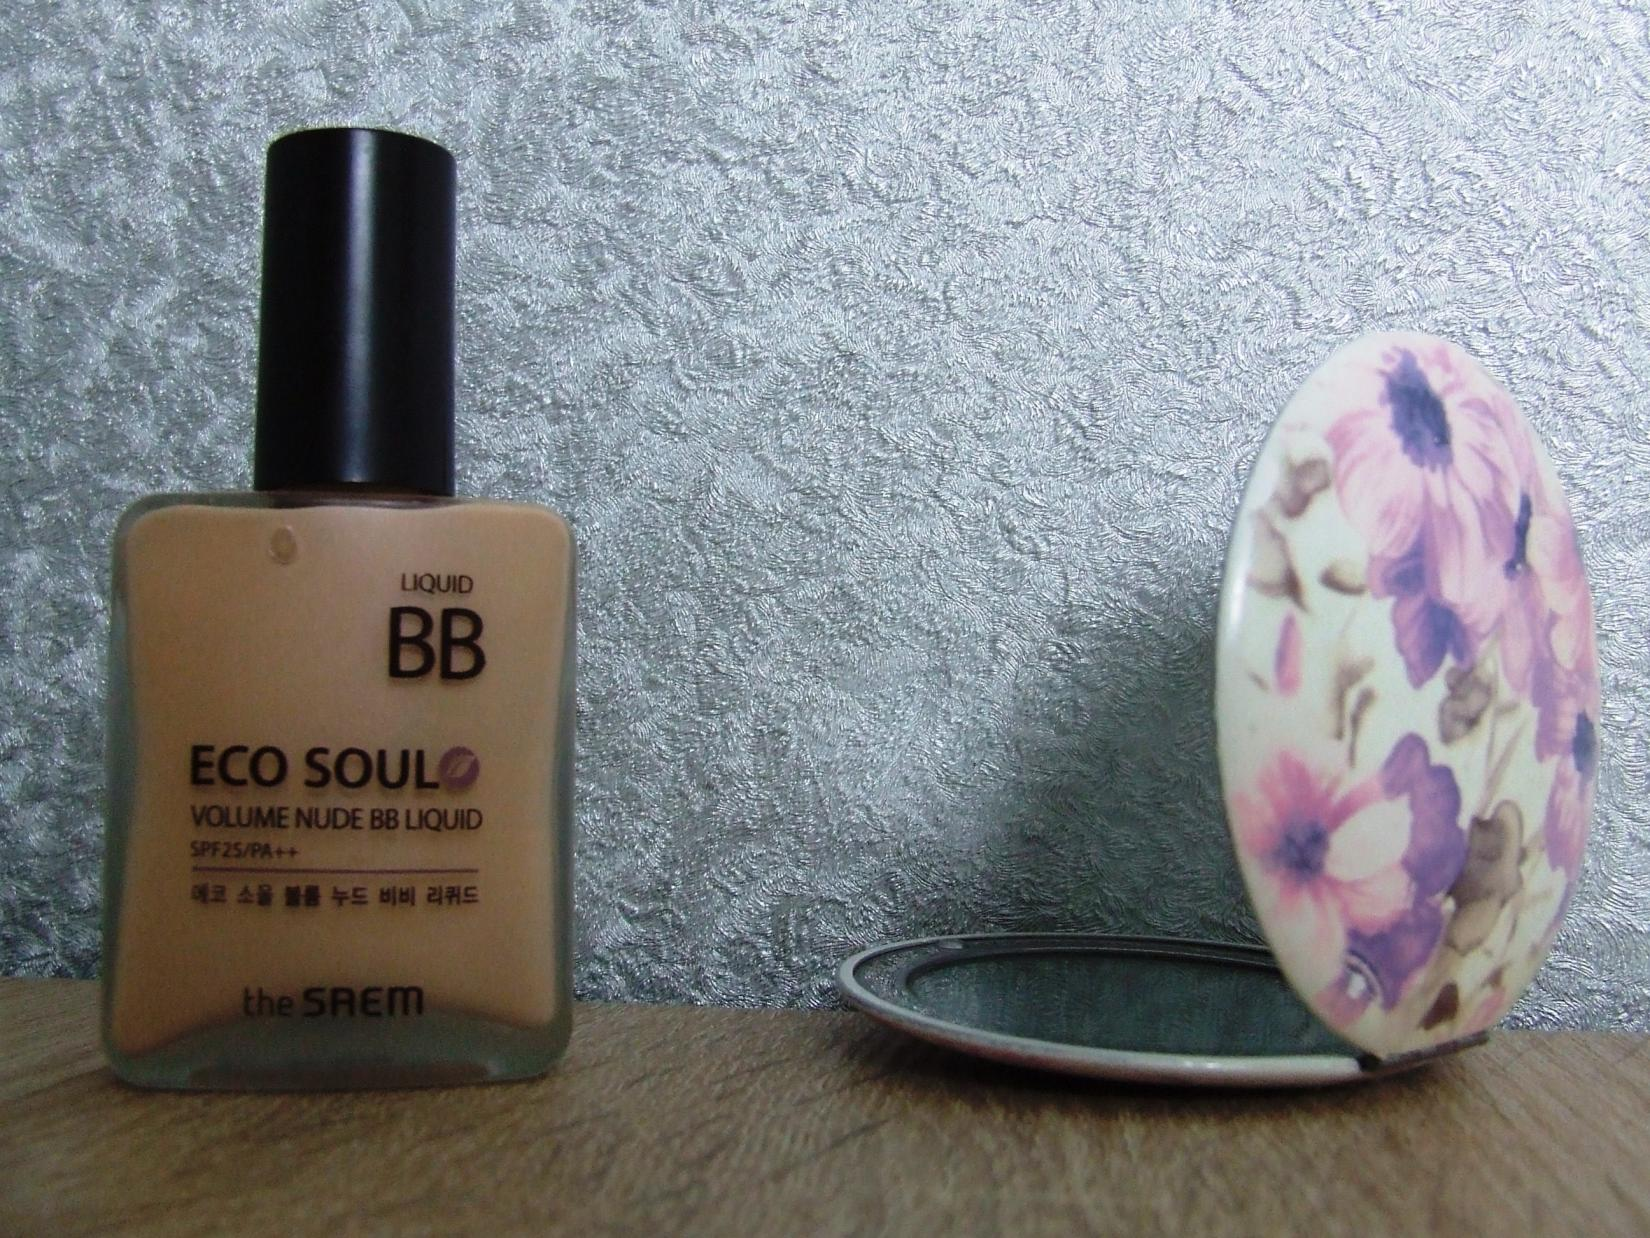 BB-крем The Saem Eco Soul Volume Nude BB Liquid